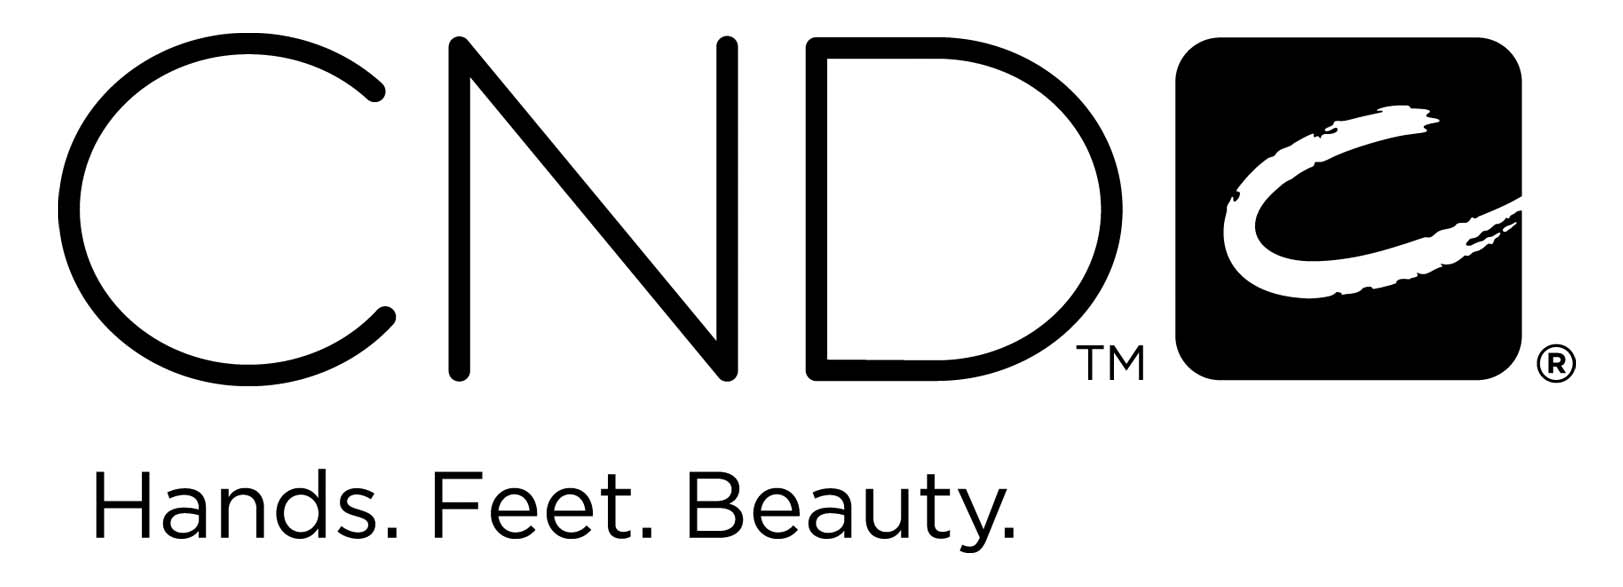 CND brand is all about preserving the health of the natural nail, so you really are in safe hands when it comes to the nail products used at Prestige Nails and Beauty.